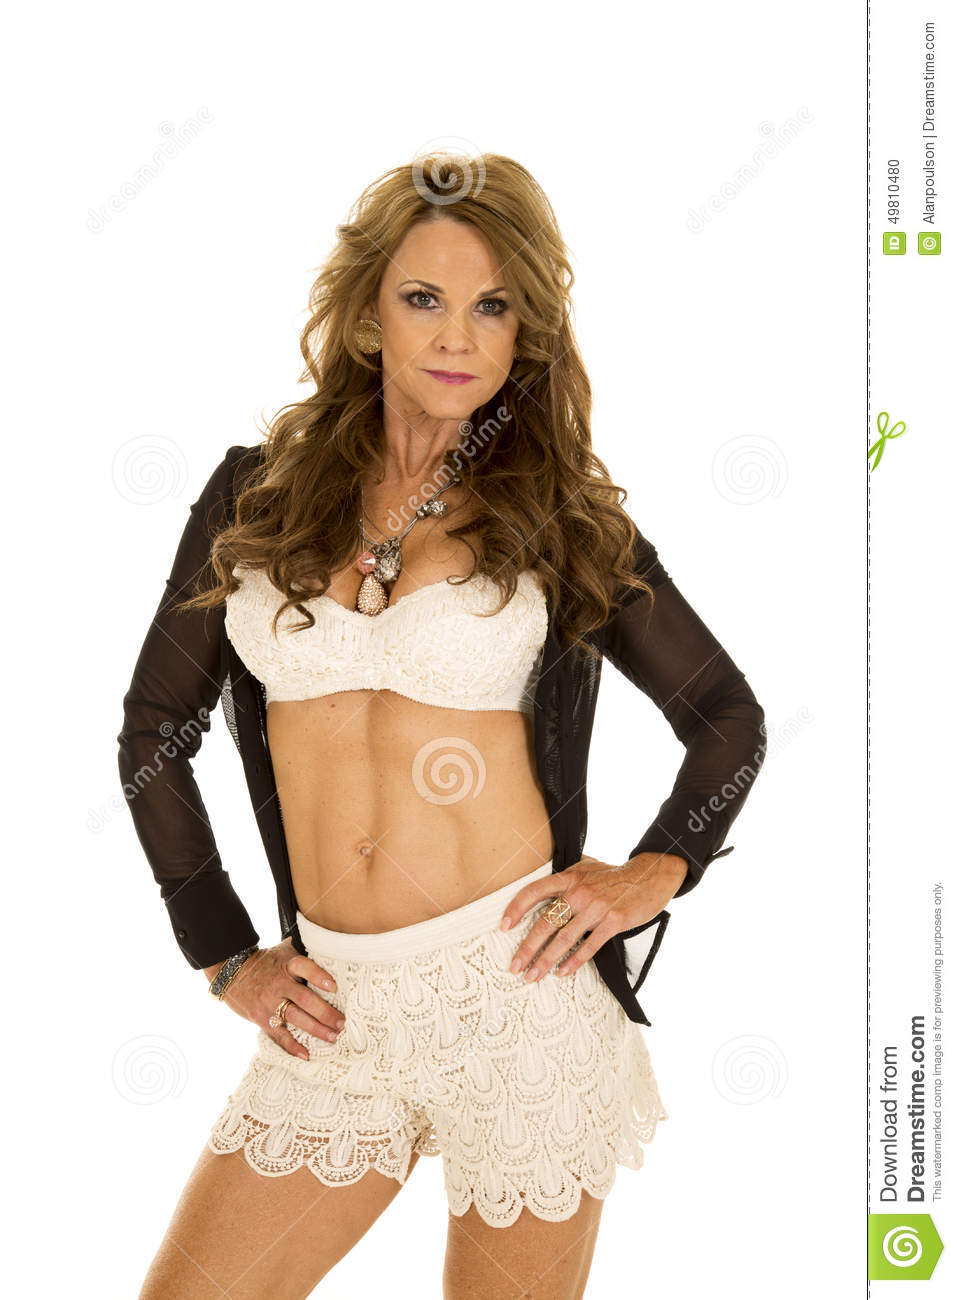 older woman lace bra hands hips stock photo - image of high, close